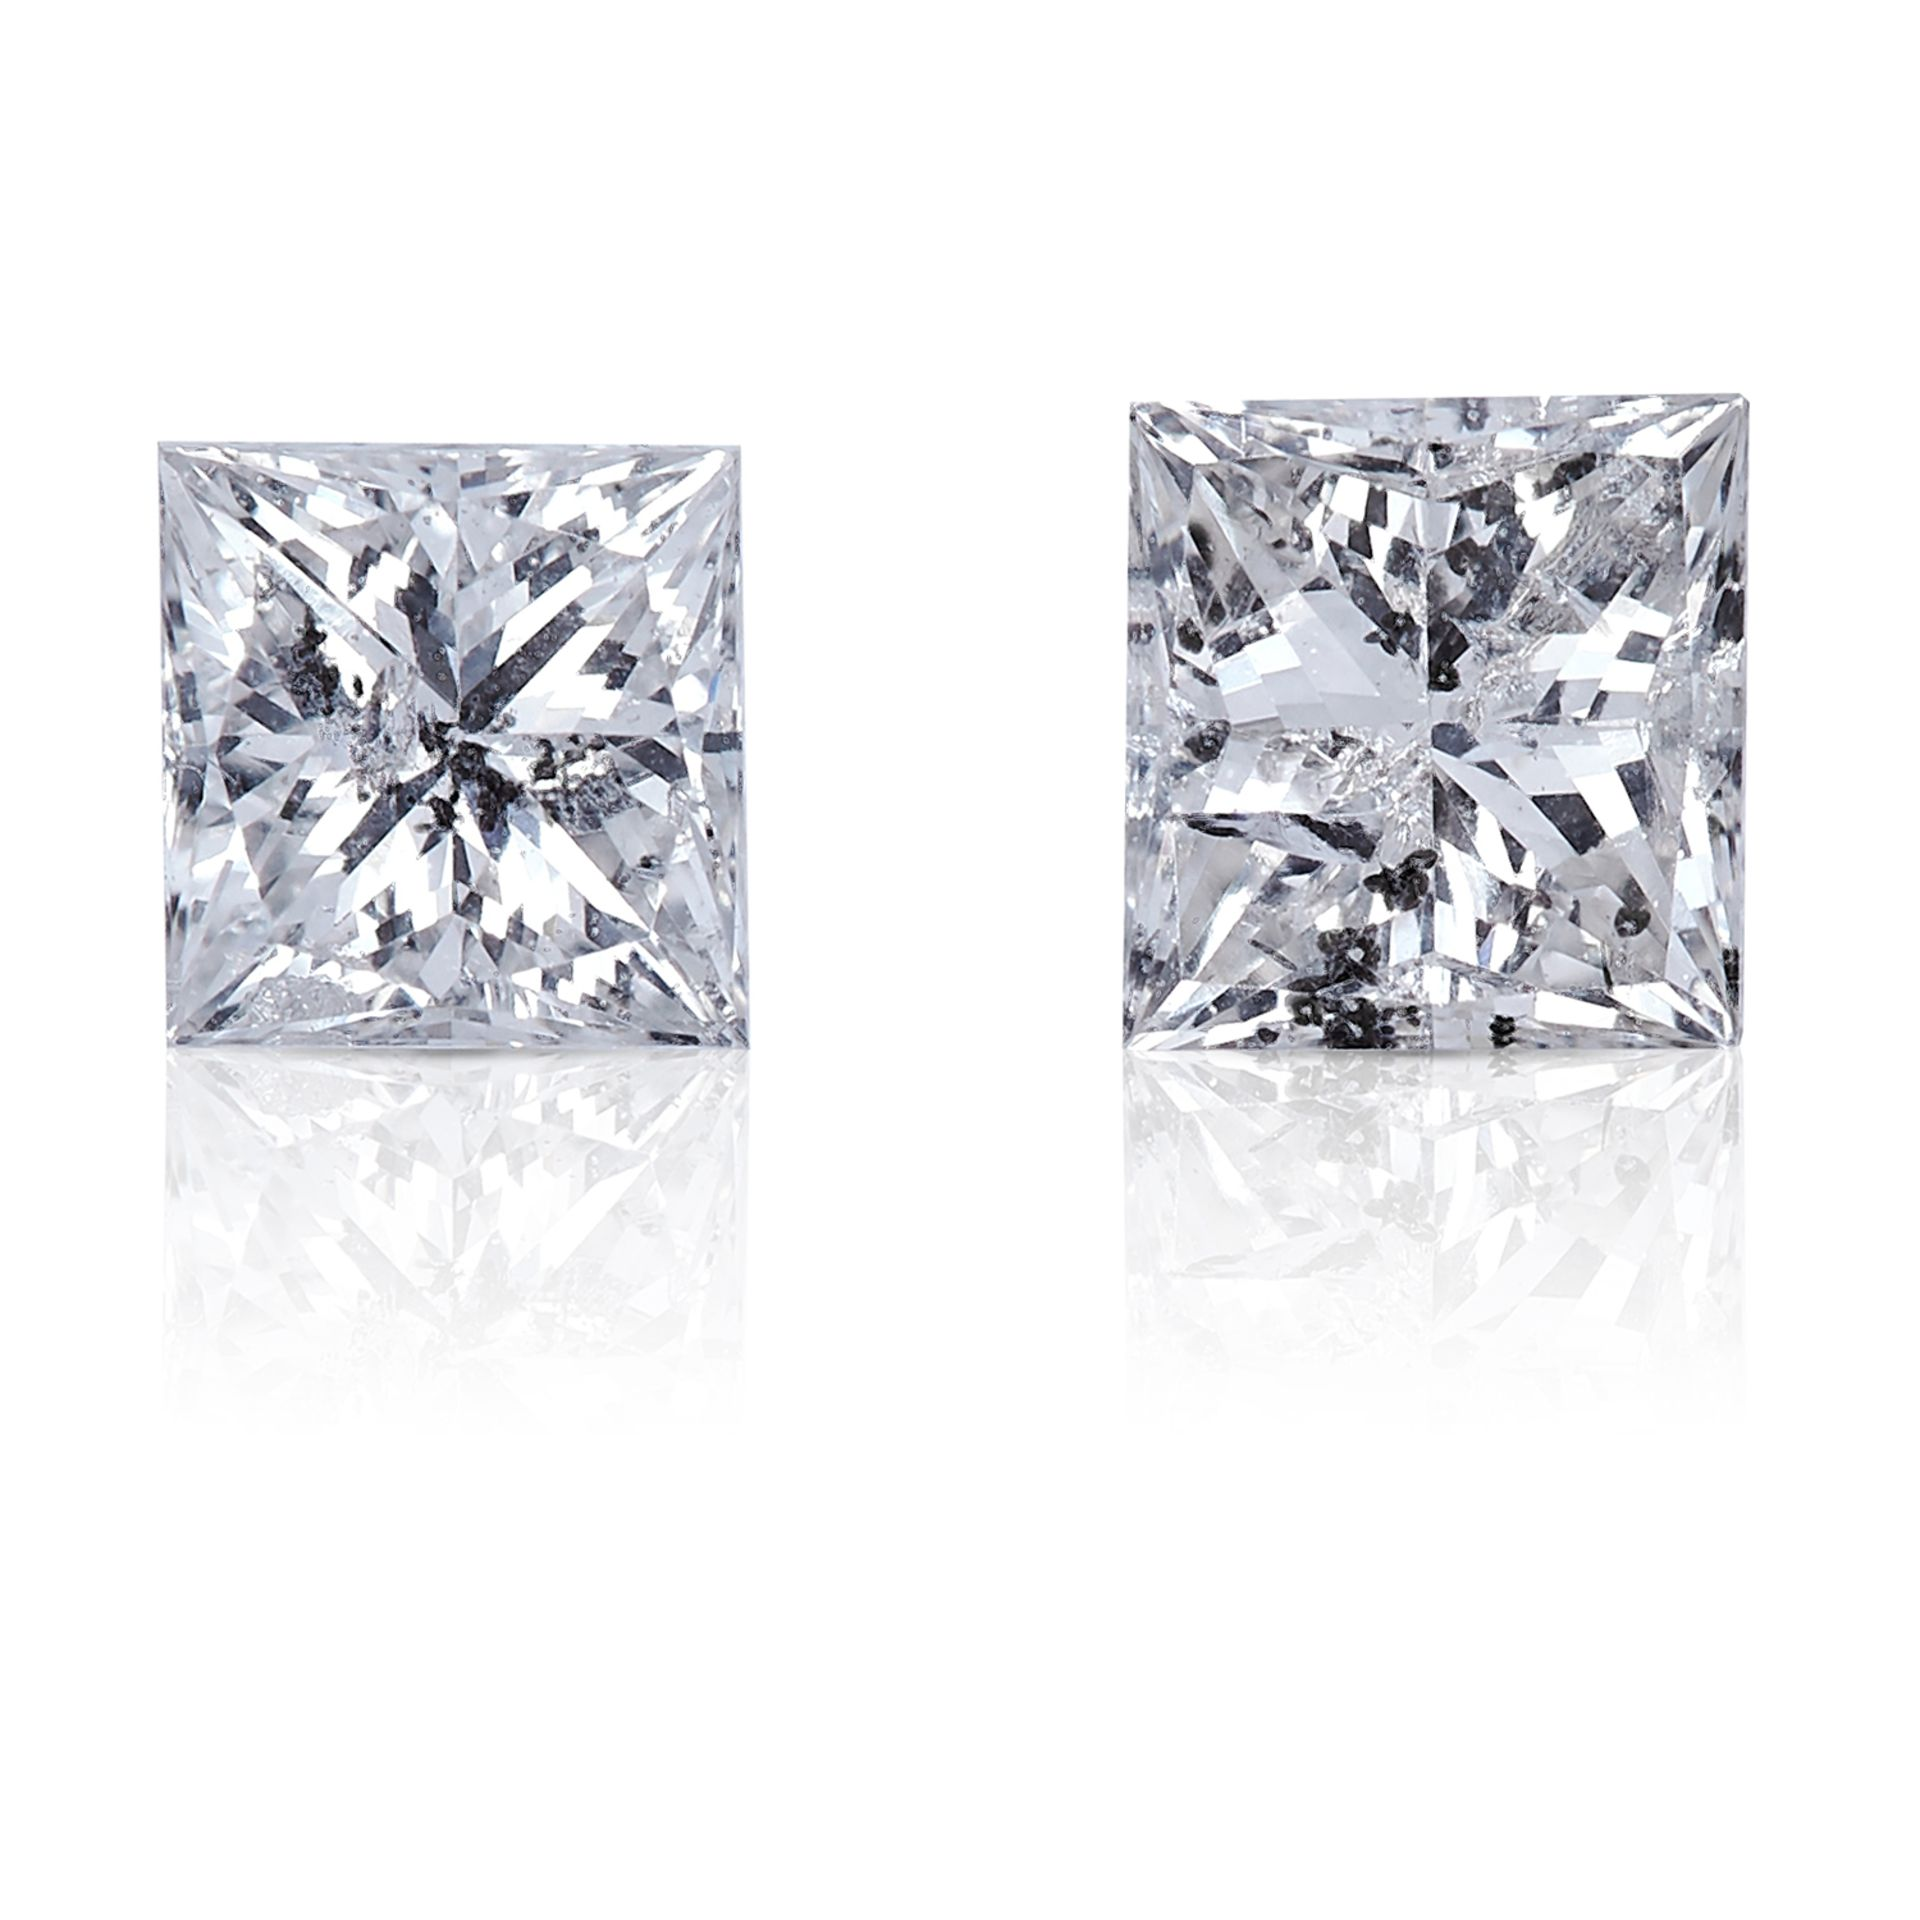 TWO SQUARE MODIFIED BRILLIANT CUT / PRINCESS CUT DIAMONDS, TOTALLING 0.49cts, UNMOUNTED.